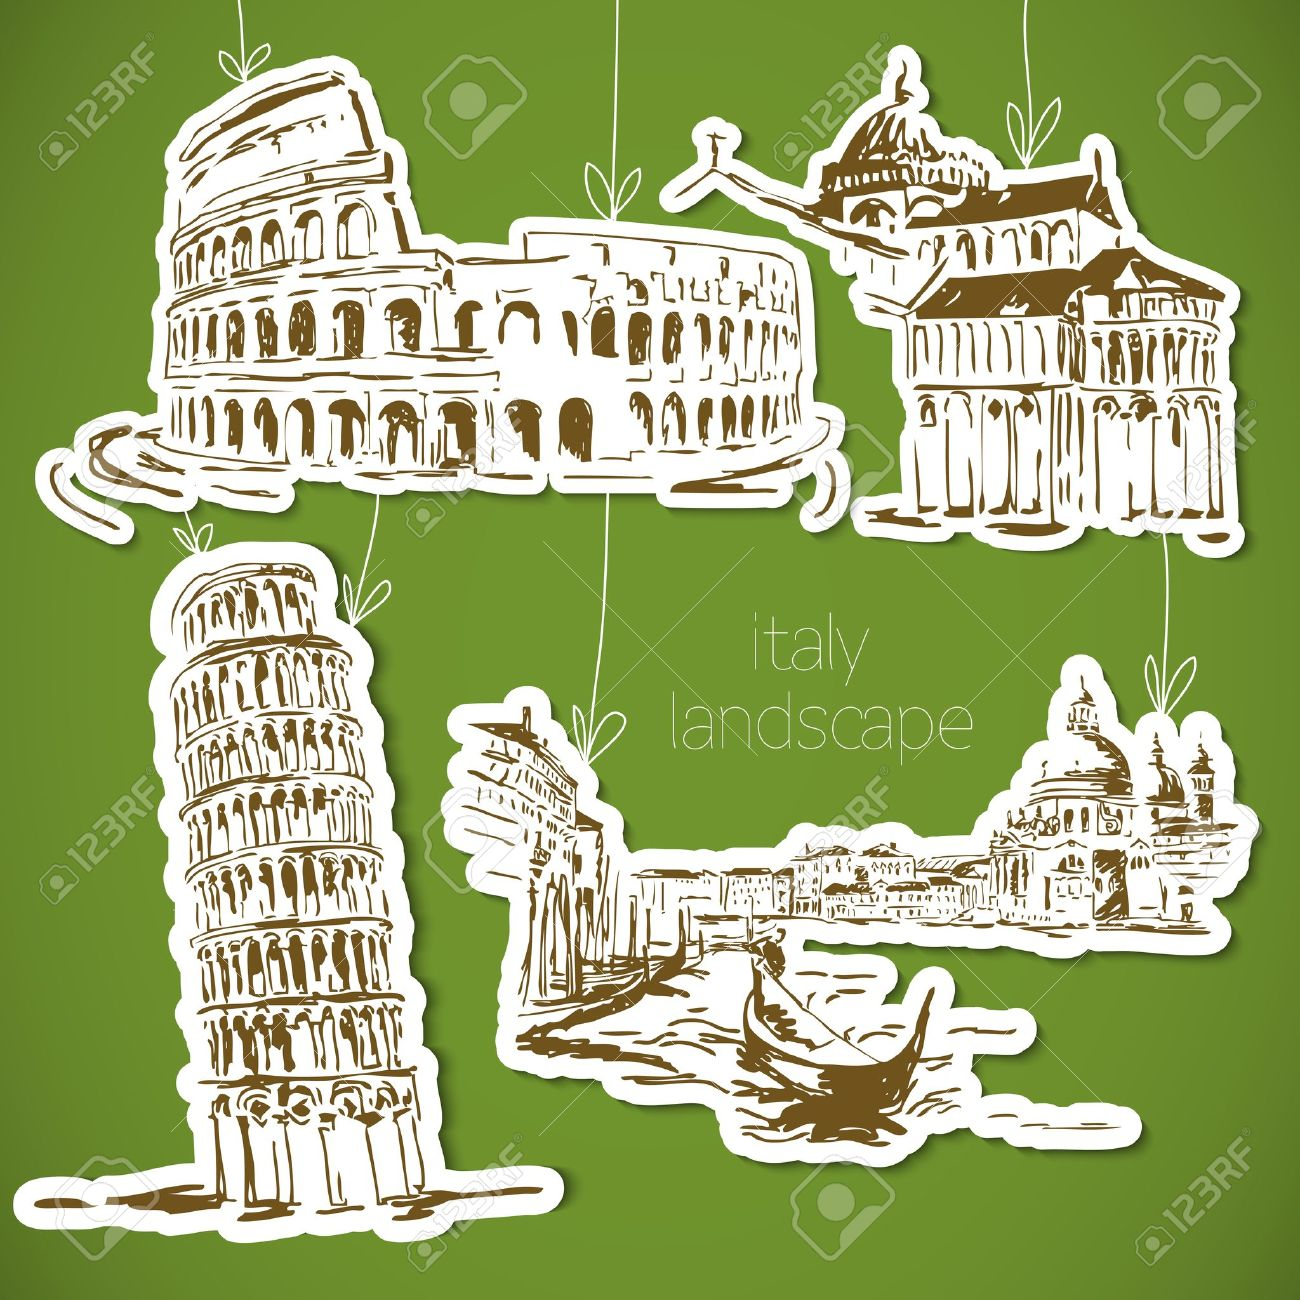 Italy Hand Drawn Landscape In Vintage Style Royalty Free Cliparts.